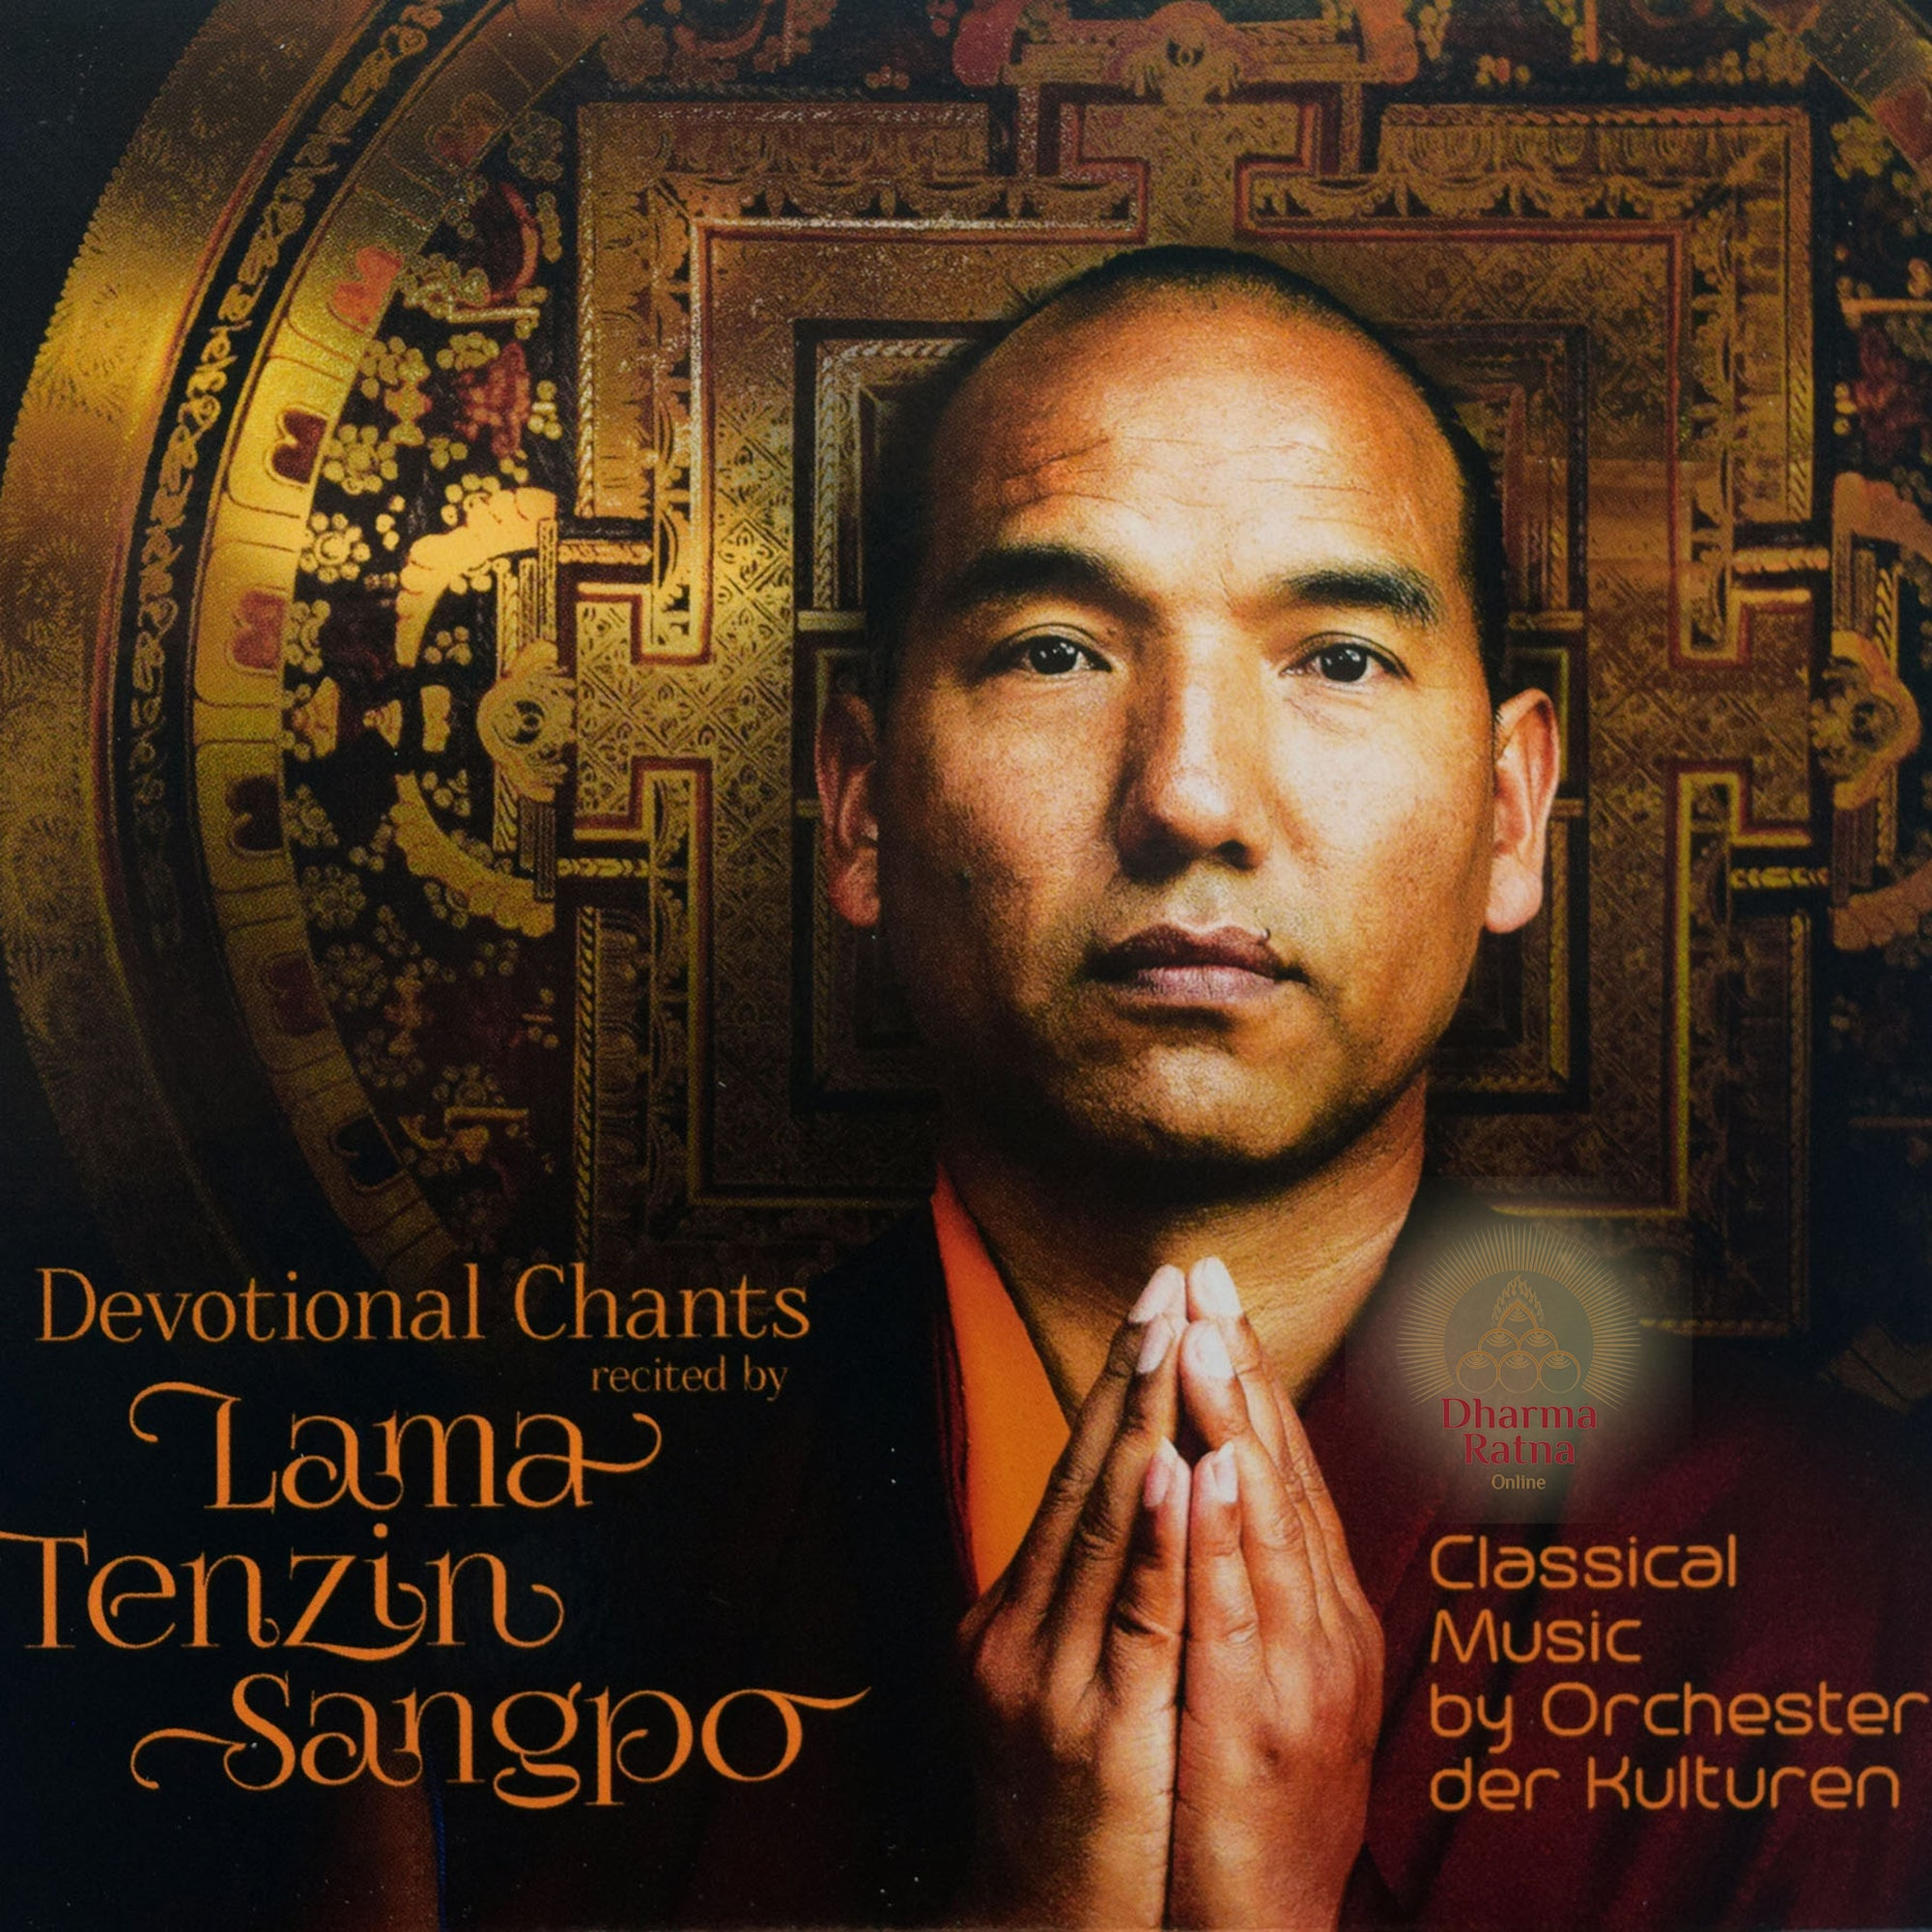 Devotional Chants